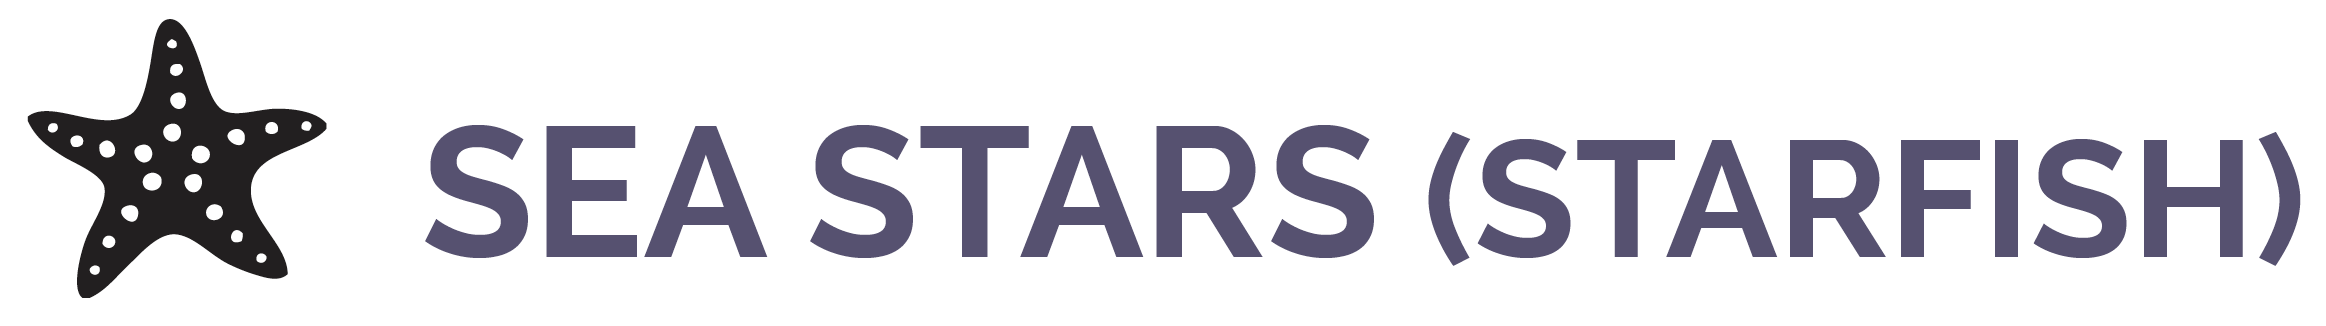 "Image shows the words ""Sea Stars (Starfish)"" and shows a cartoon of a sea star."